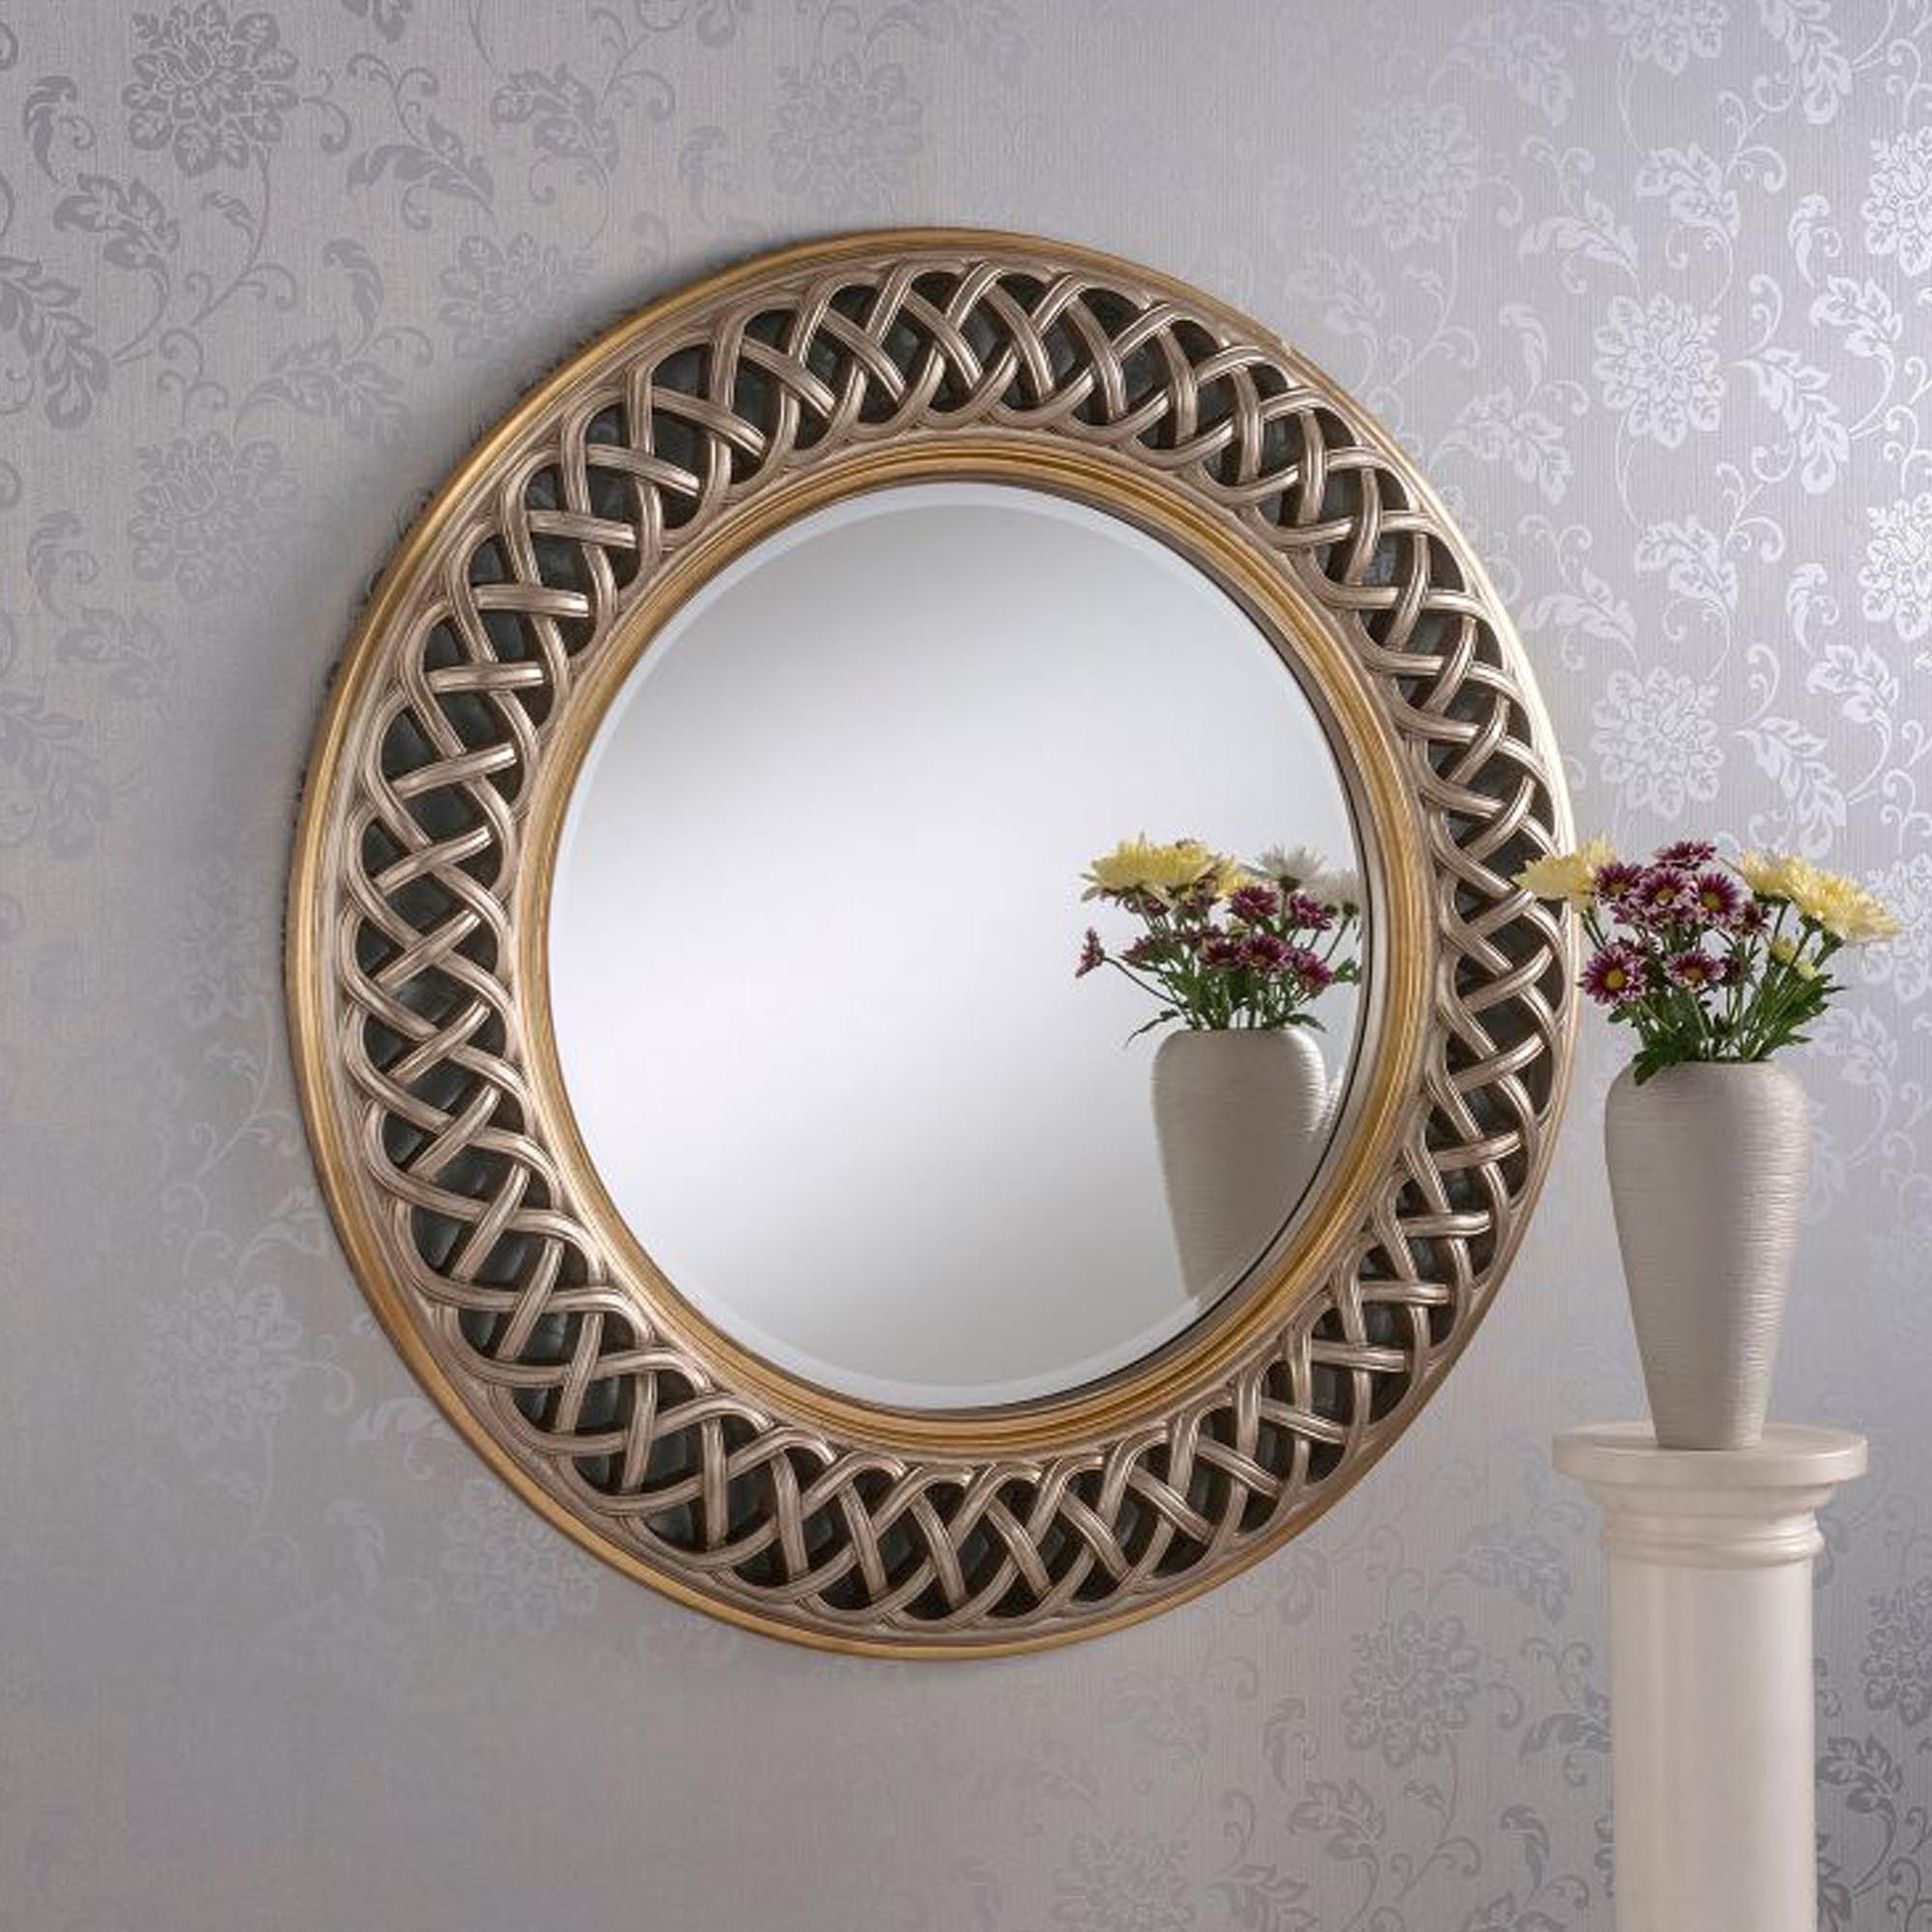 Interlocking Lace Silver/gold Decorative Wall Mirror In Recent Decorative Cheap Wall Mirrors (View 13 of 20)